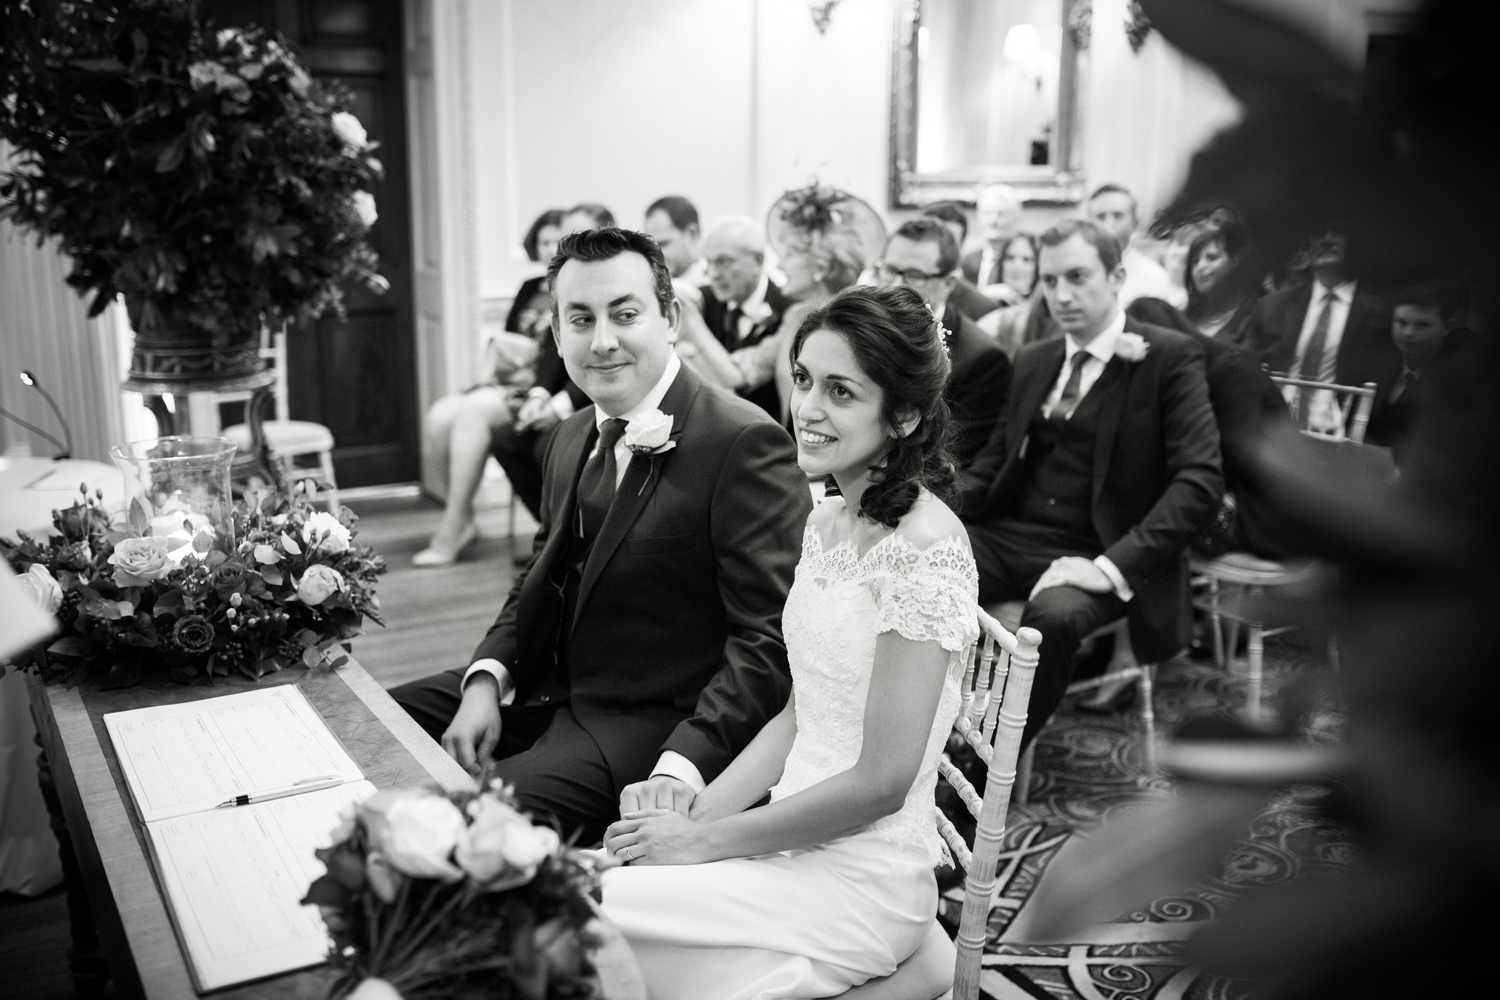 groom looking lovingly at bride - ceremony